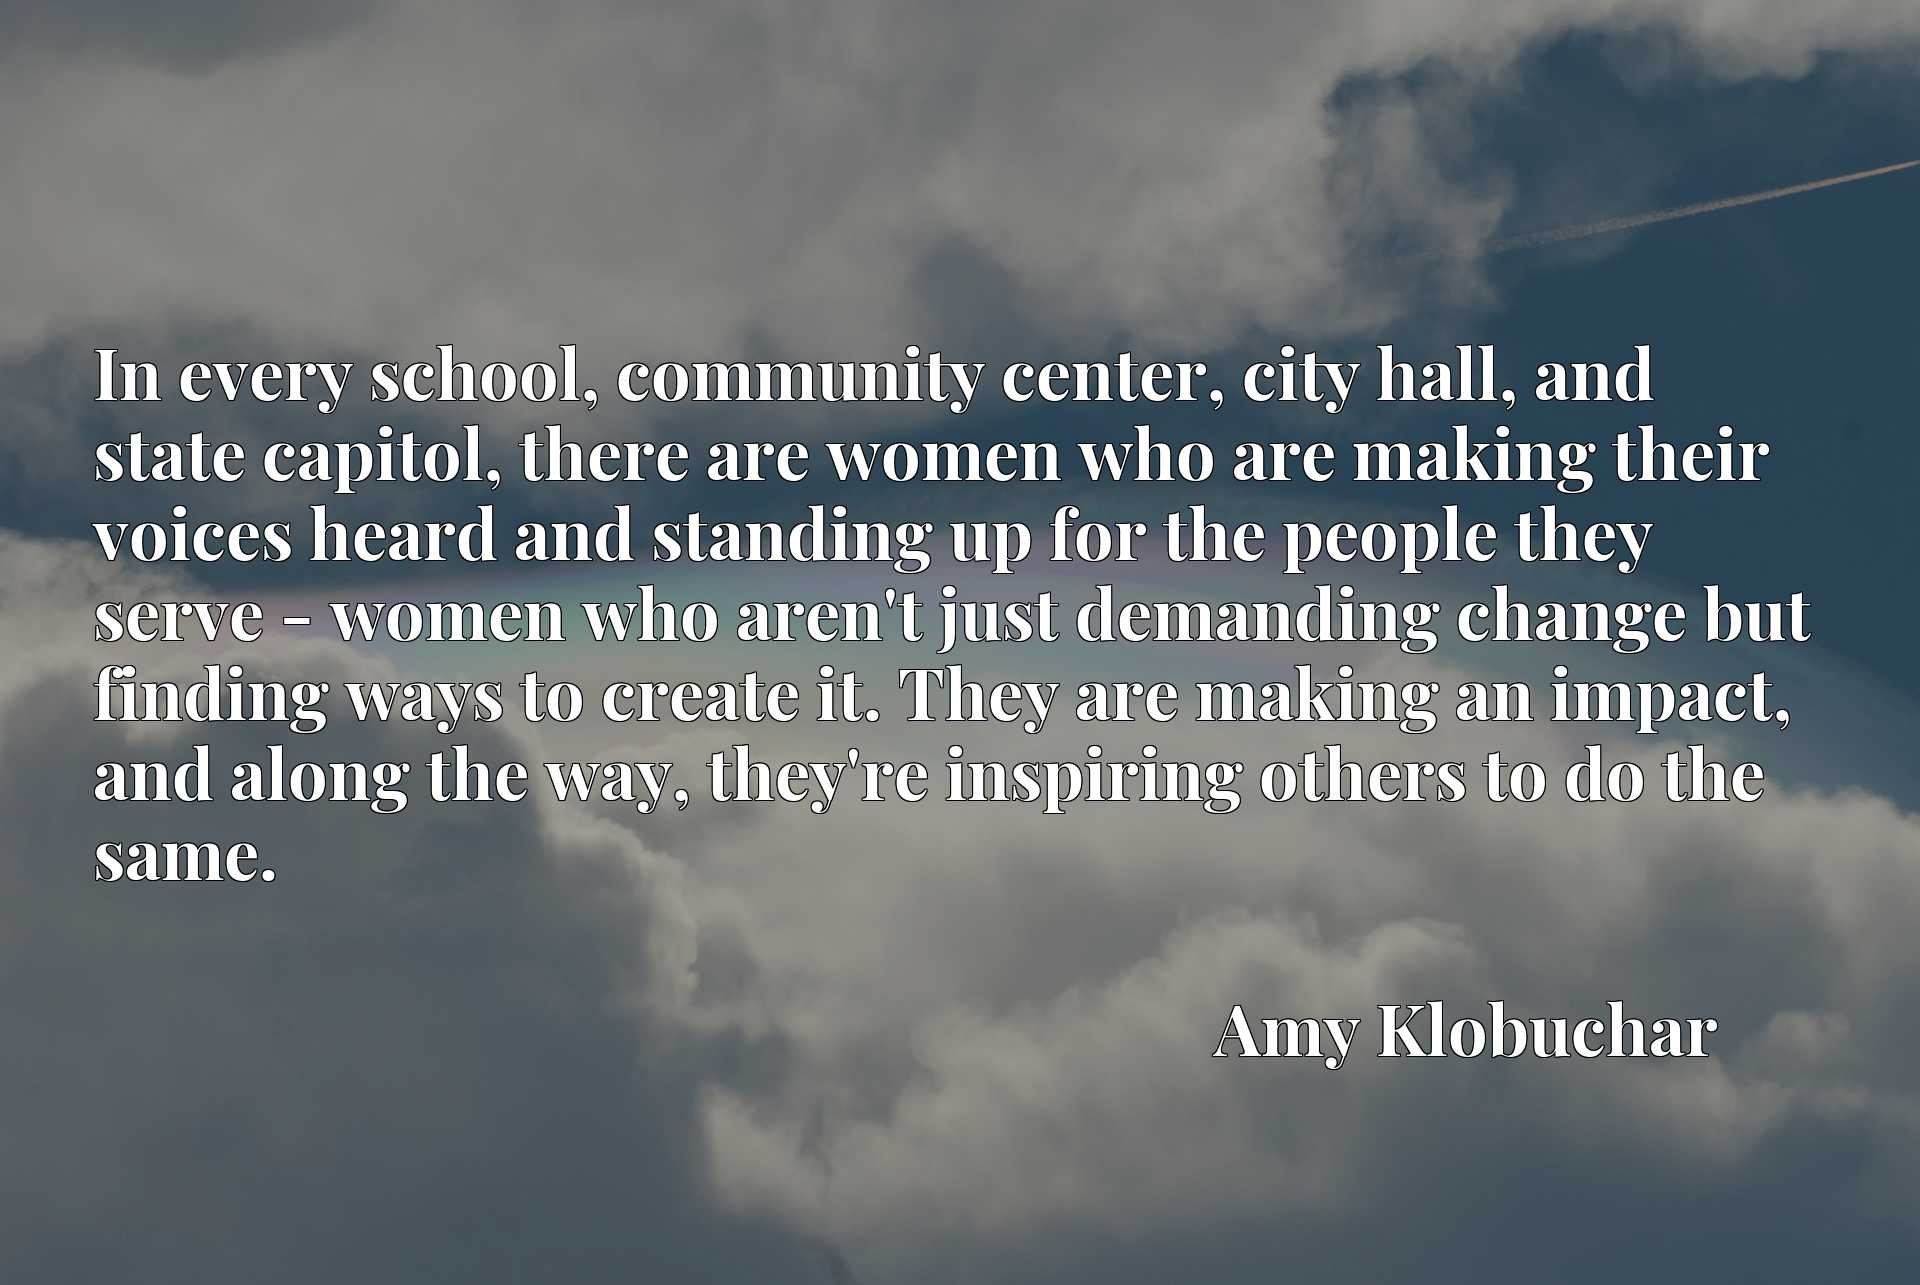 In every school, community center, city hall, and state capitol, there are women who are making their voices heard and standing up for the people they serve - women who aren't just demanding change but finding ways to create it. They are making an impact, and along the way, they're inspiring others to do the same.